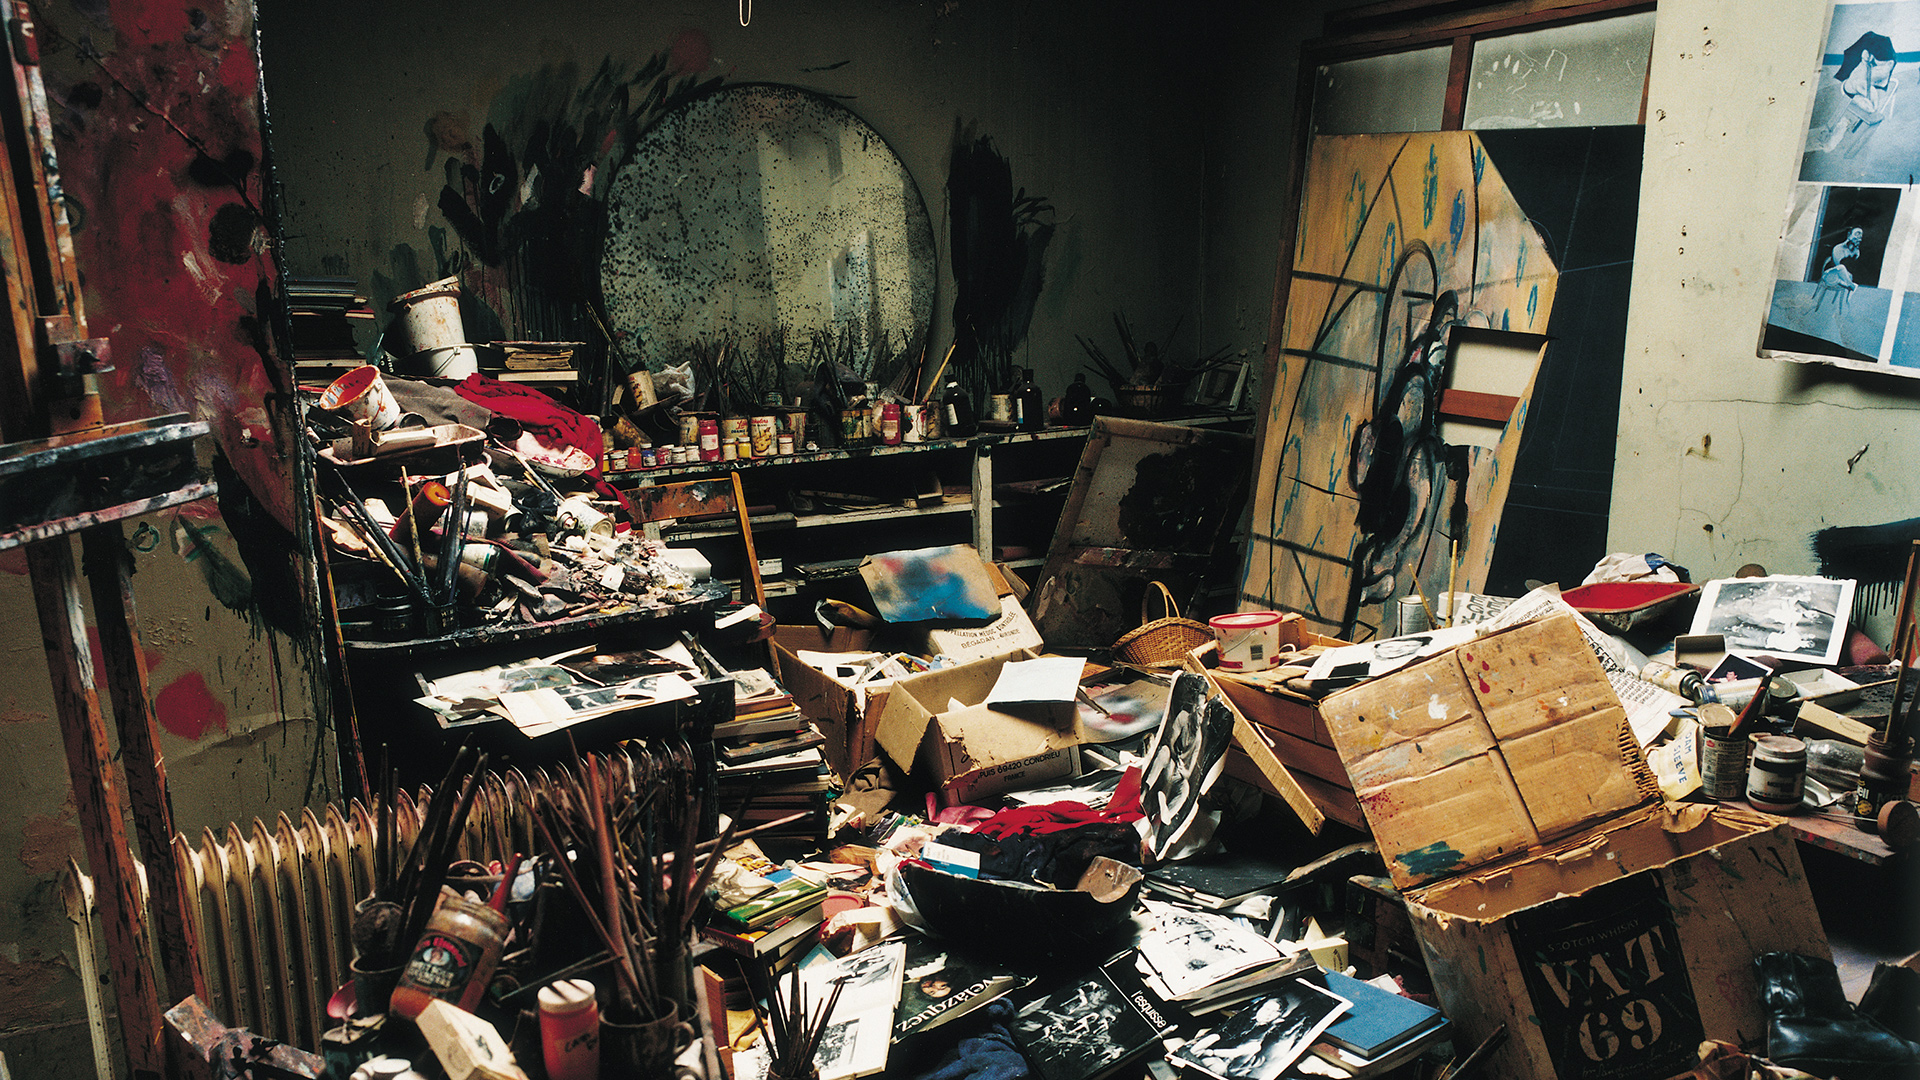 Studio de Francis Bacon, 1998, image © The Estate of Francis Bacon